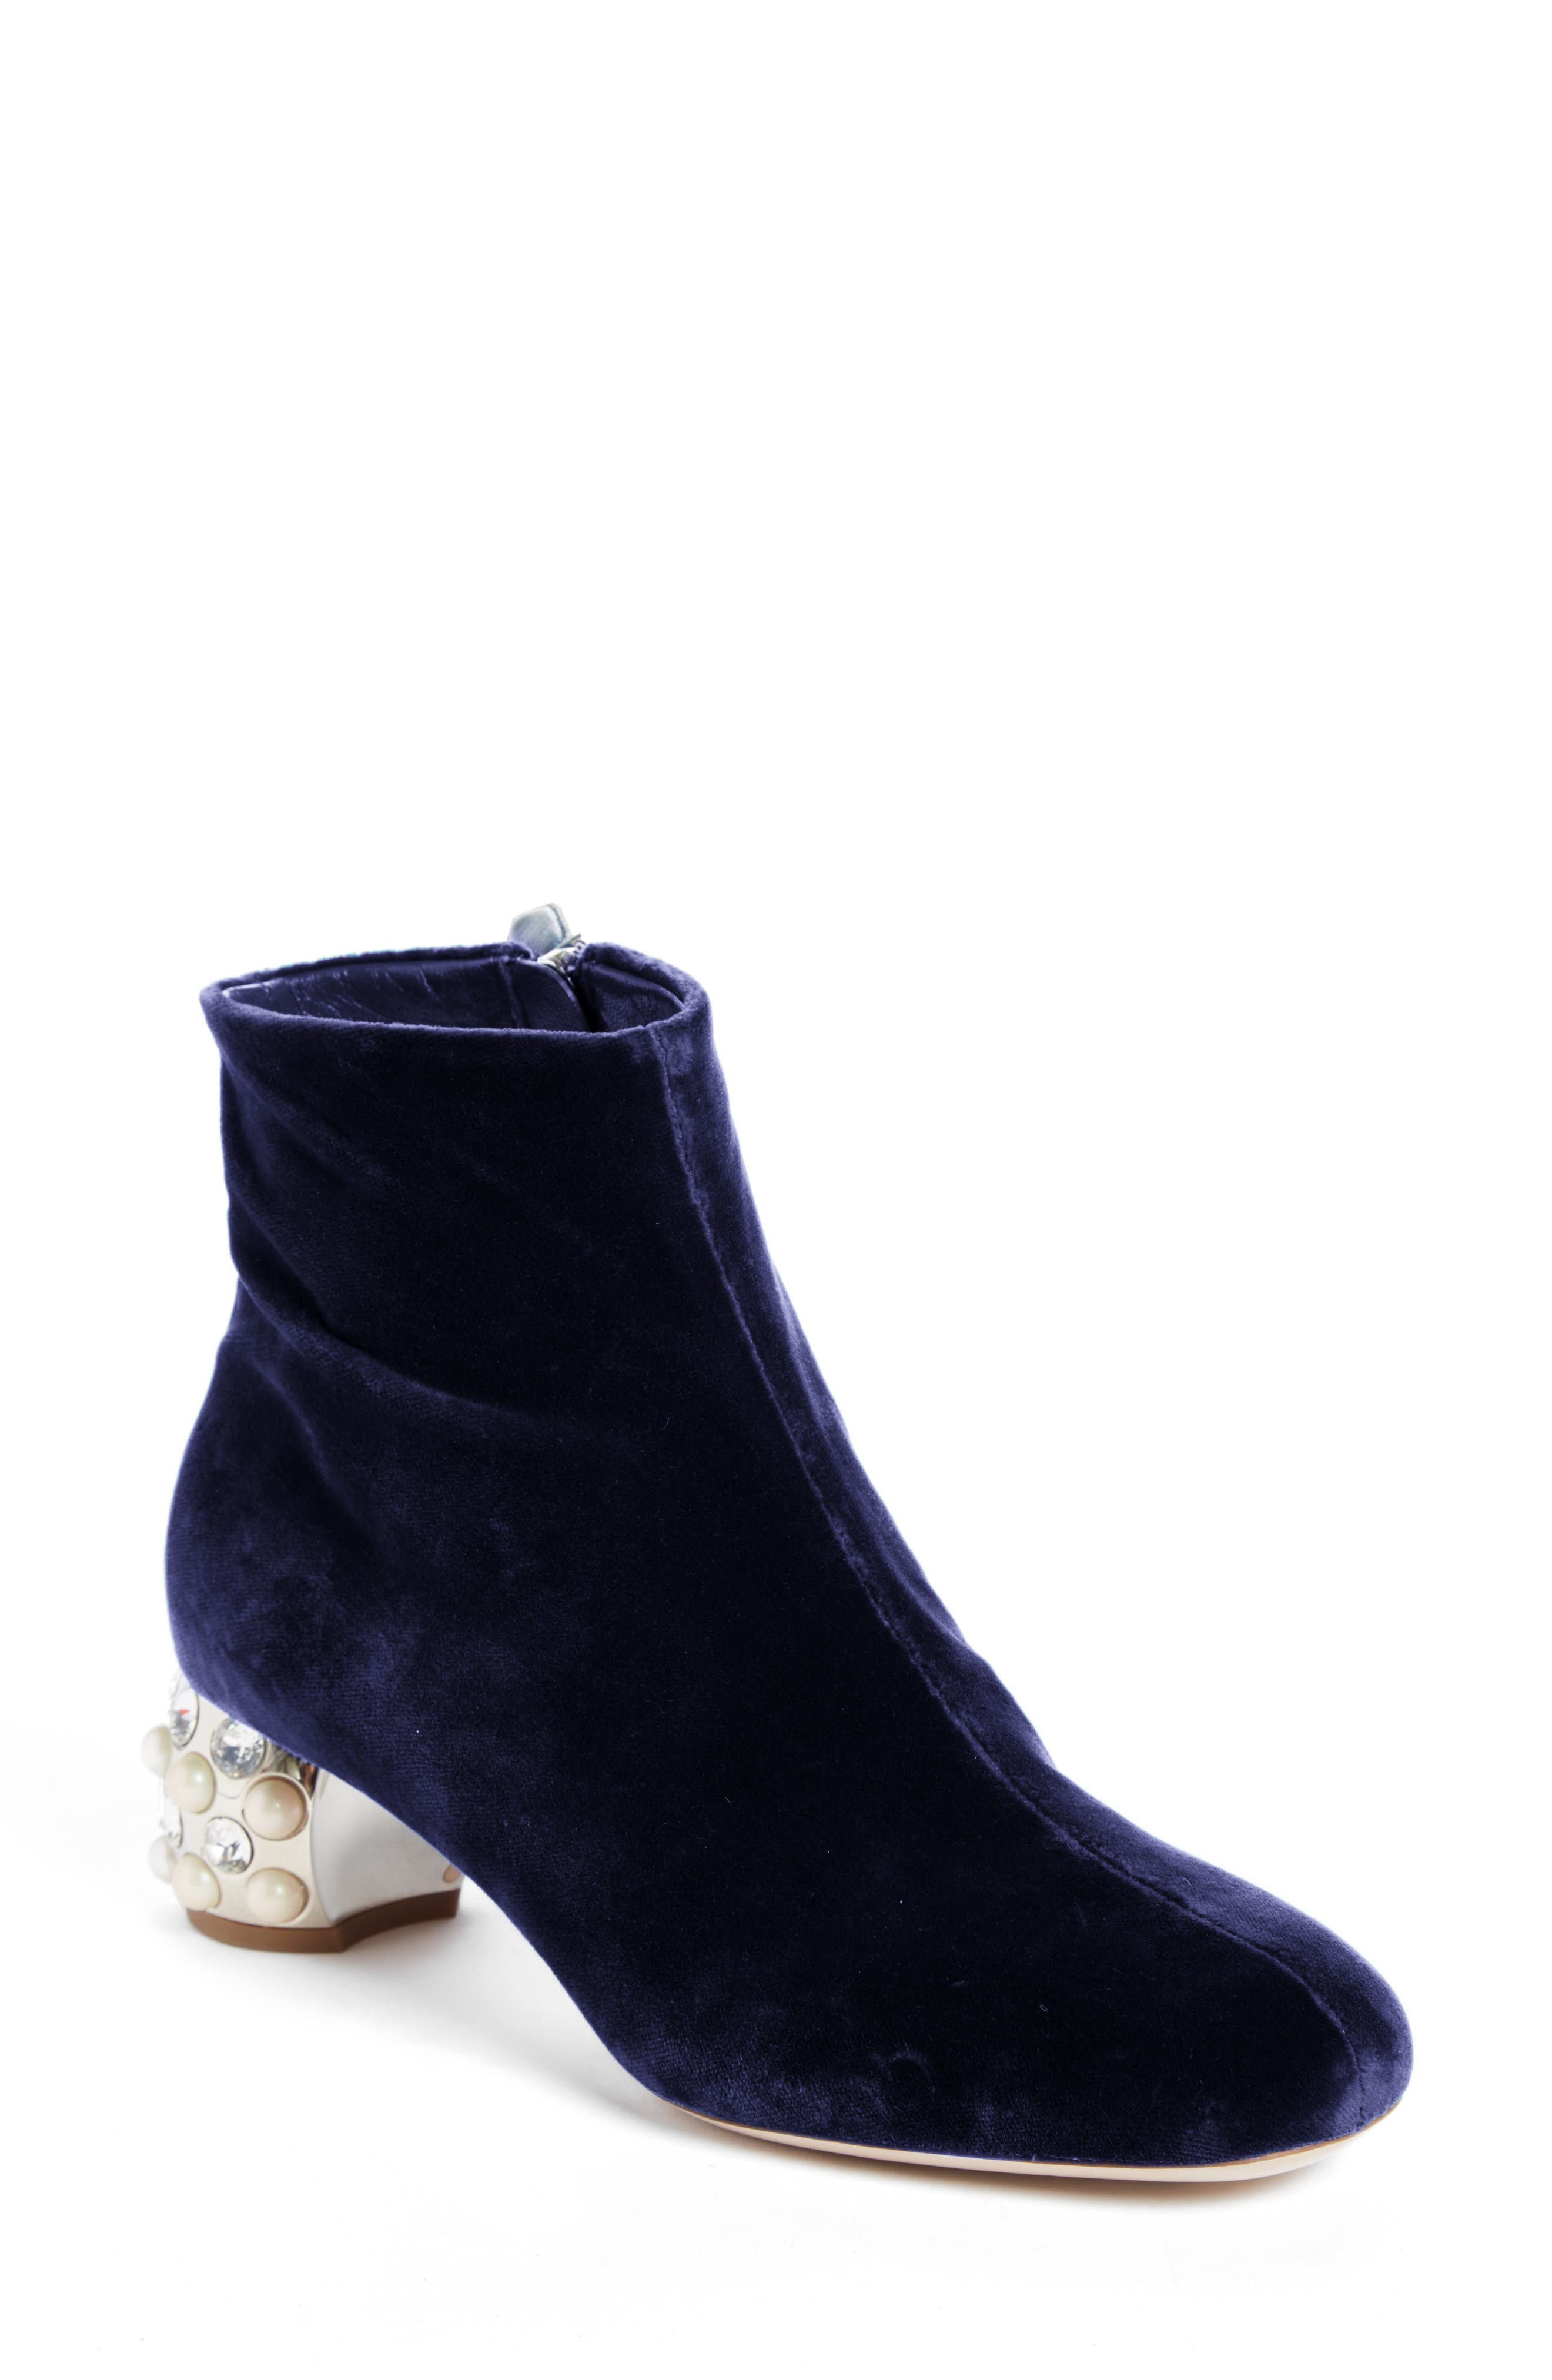 Main Image - Miu Miu Embellished Block Heel Boot (Women)